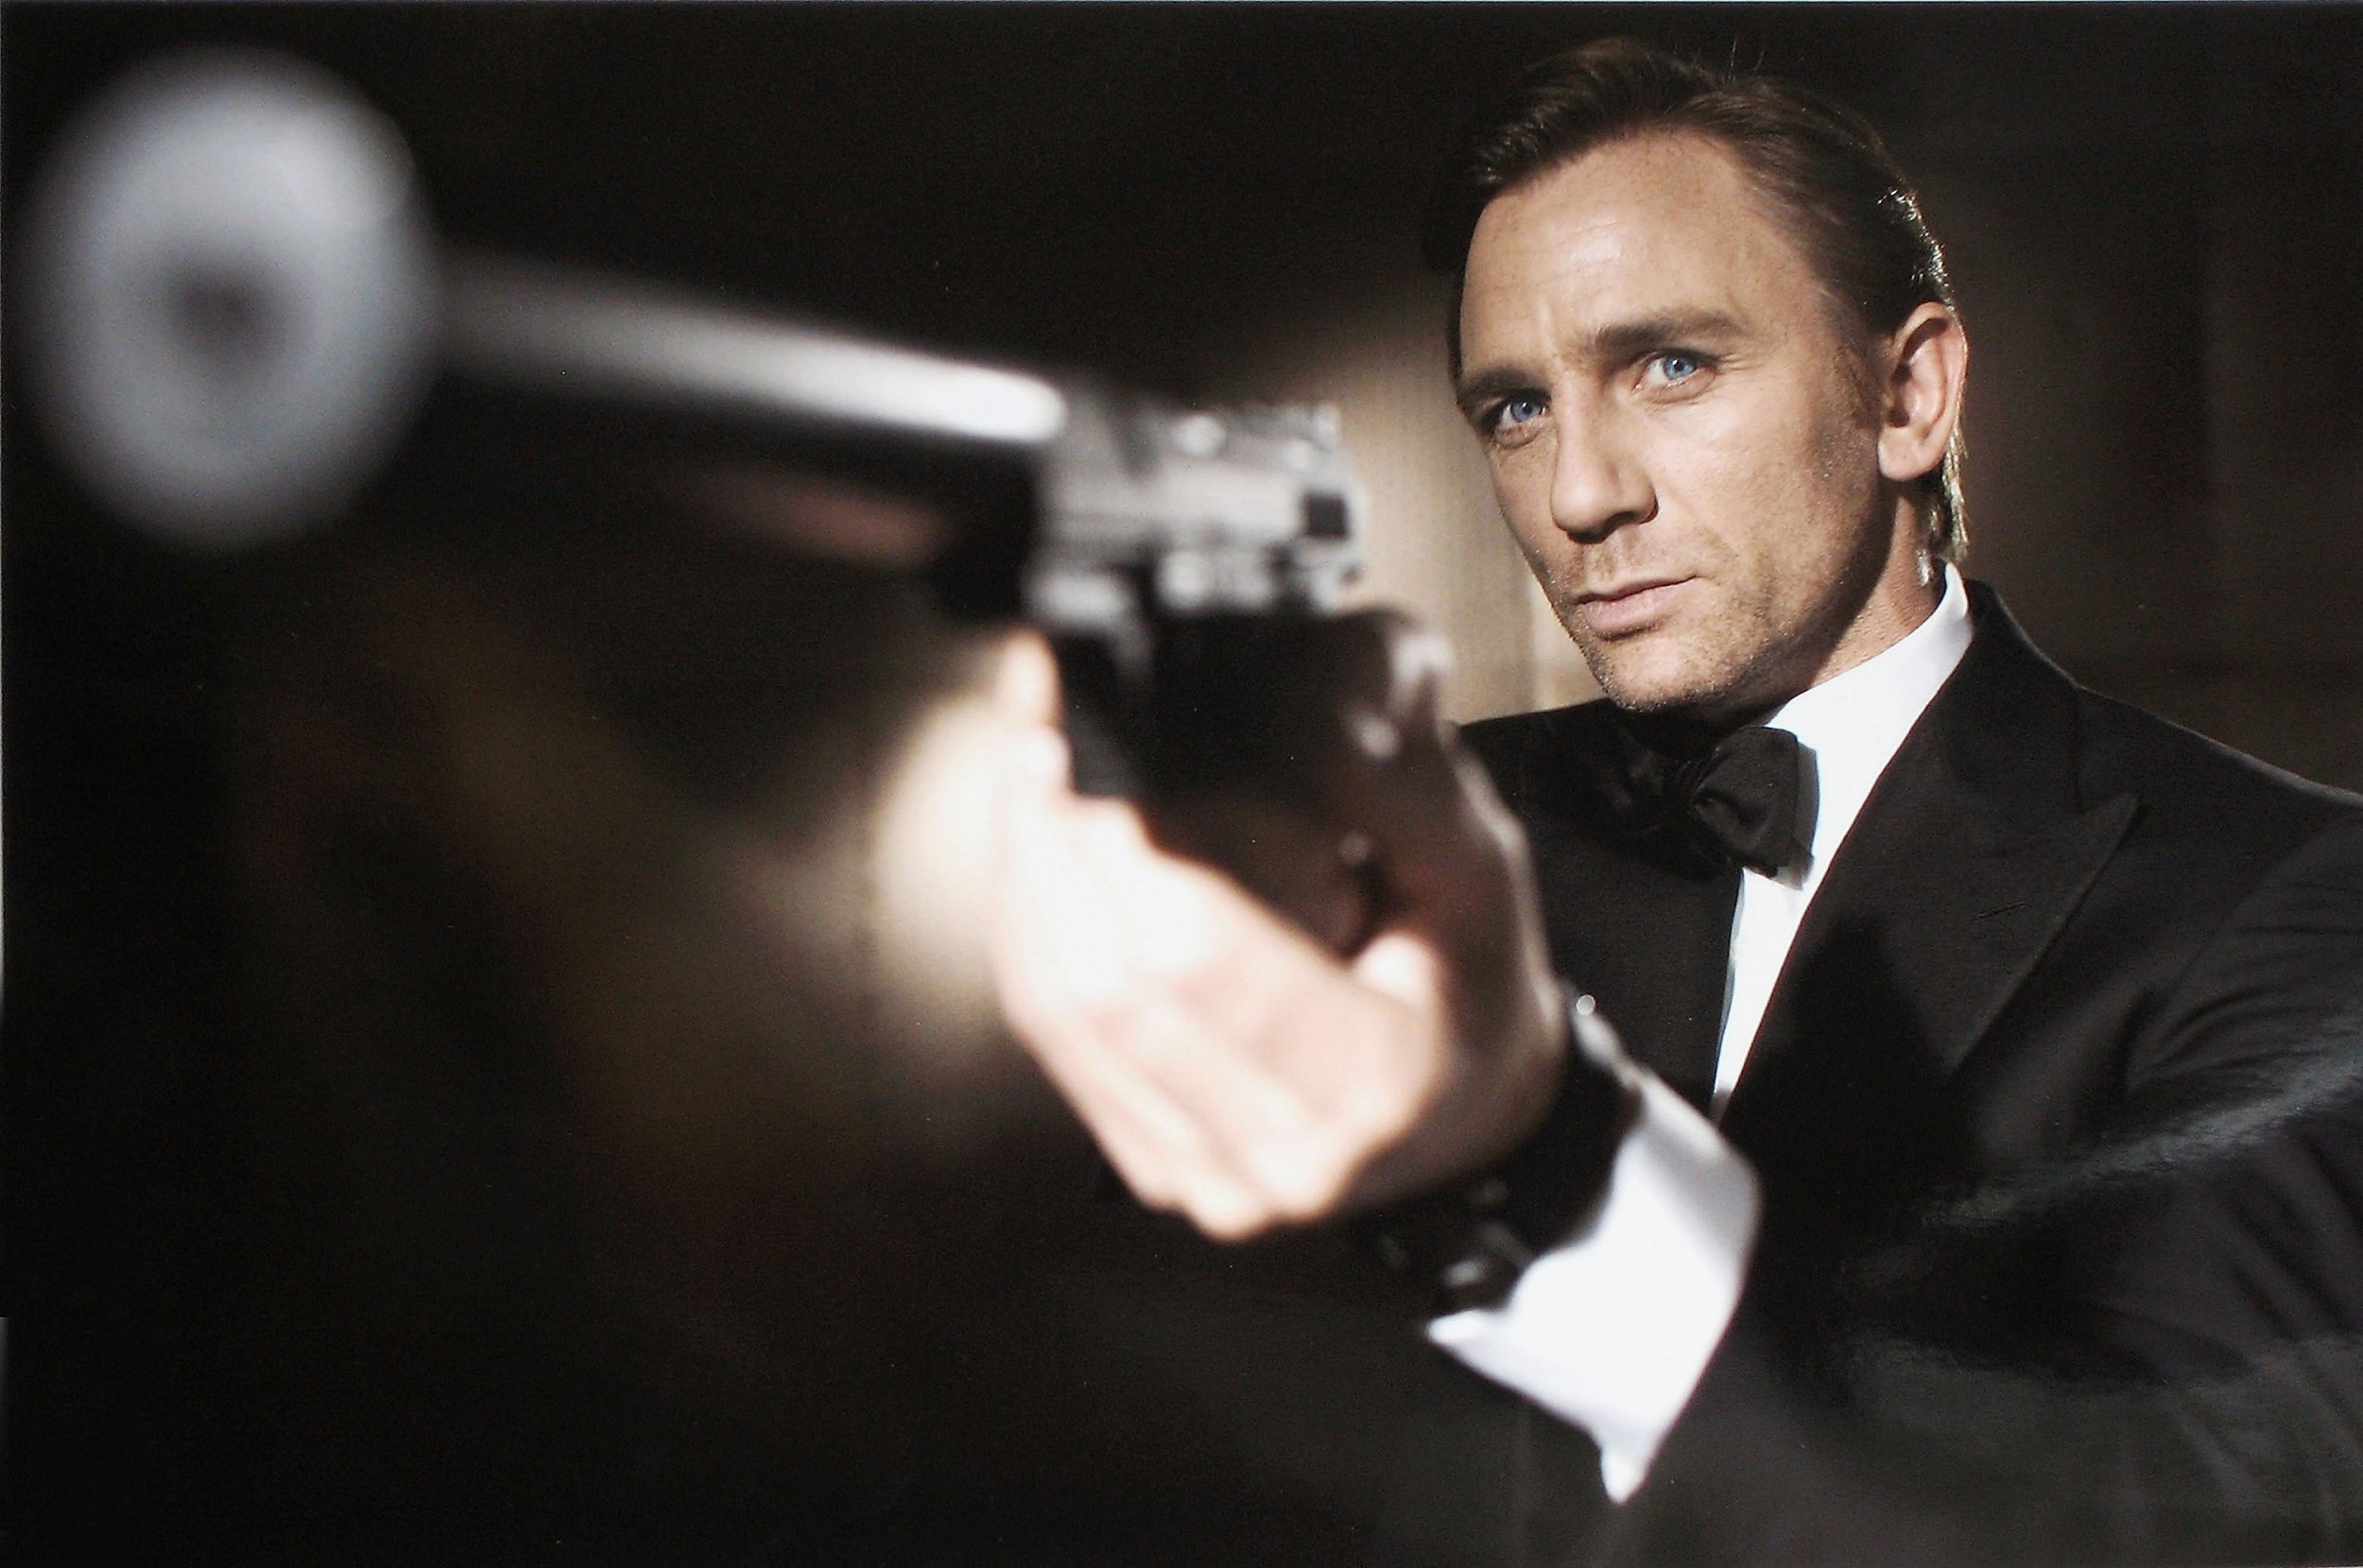 UNDATED: In this undated welfare print from Eon Productions, actor Daniel Craig poses as James Bond. Craig was denounced as mythological British tip representative James Bond 007 in a 21st Bond film Casino Royale, during HMS President, St Katharine's Way on Oct 14, 2005 in London, England. (Photo by Greg Williams/Eon Productions around Getty Images)